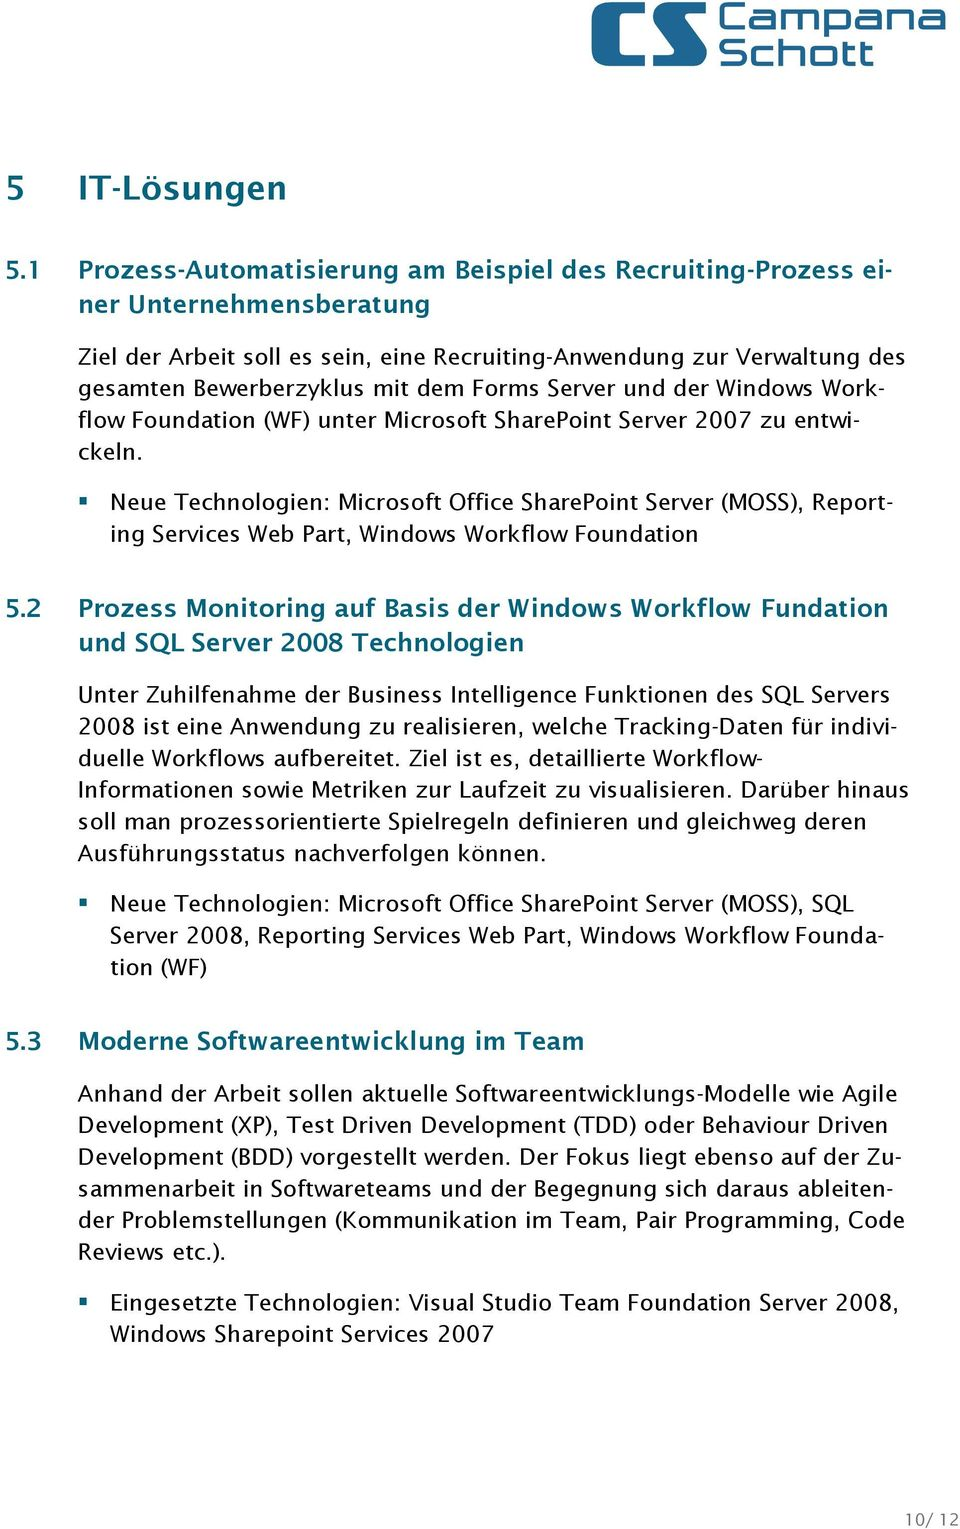 Forms Server und der Windows Workflow Foundation (WF) unter Microsoft SharePoint Server 2007 zu entwickeln.